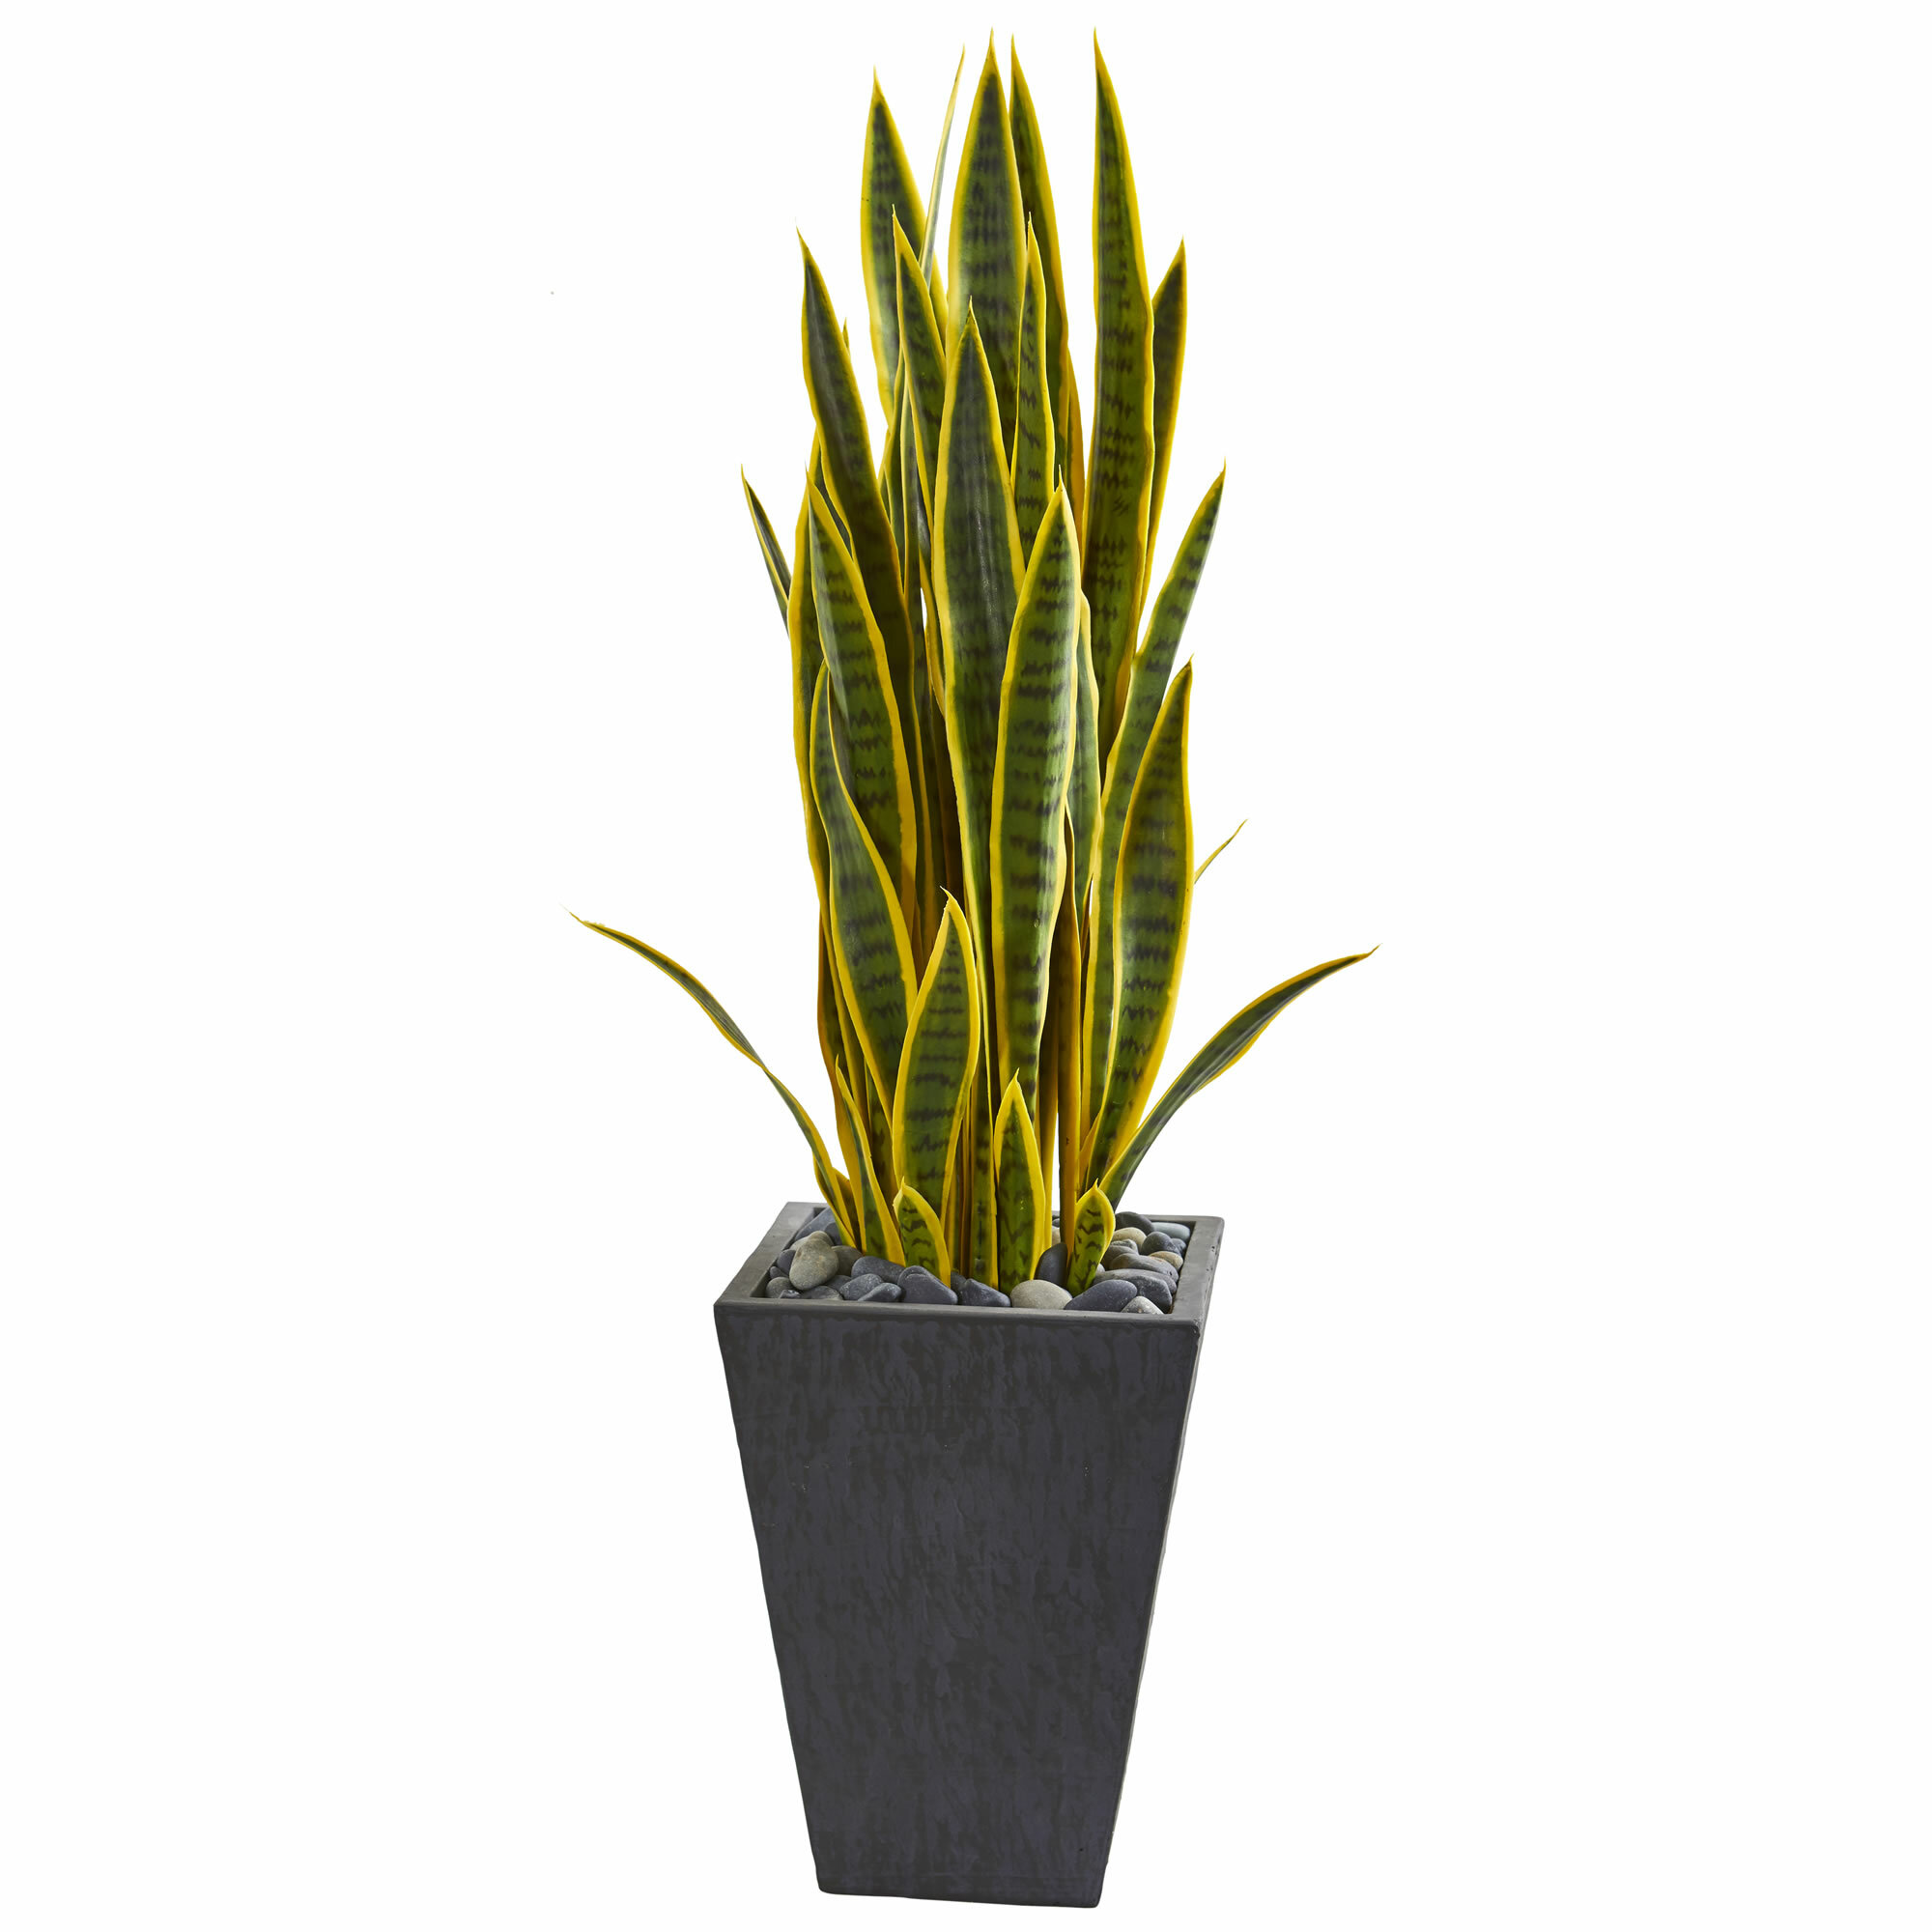 Ollain 4 PCS Artificial Sansevieria Plants 30 Inch Tall Fake Snake Faux Plant for Indoor and Outdoor Home Garden Office Store Decoration Yellow Edge